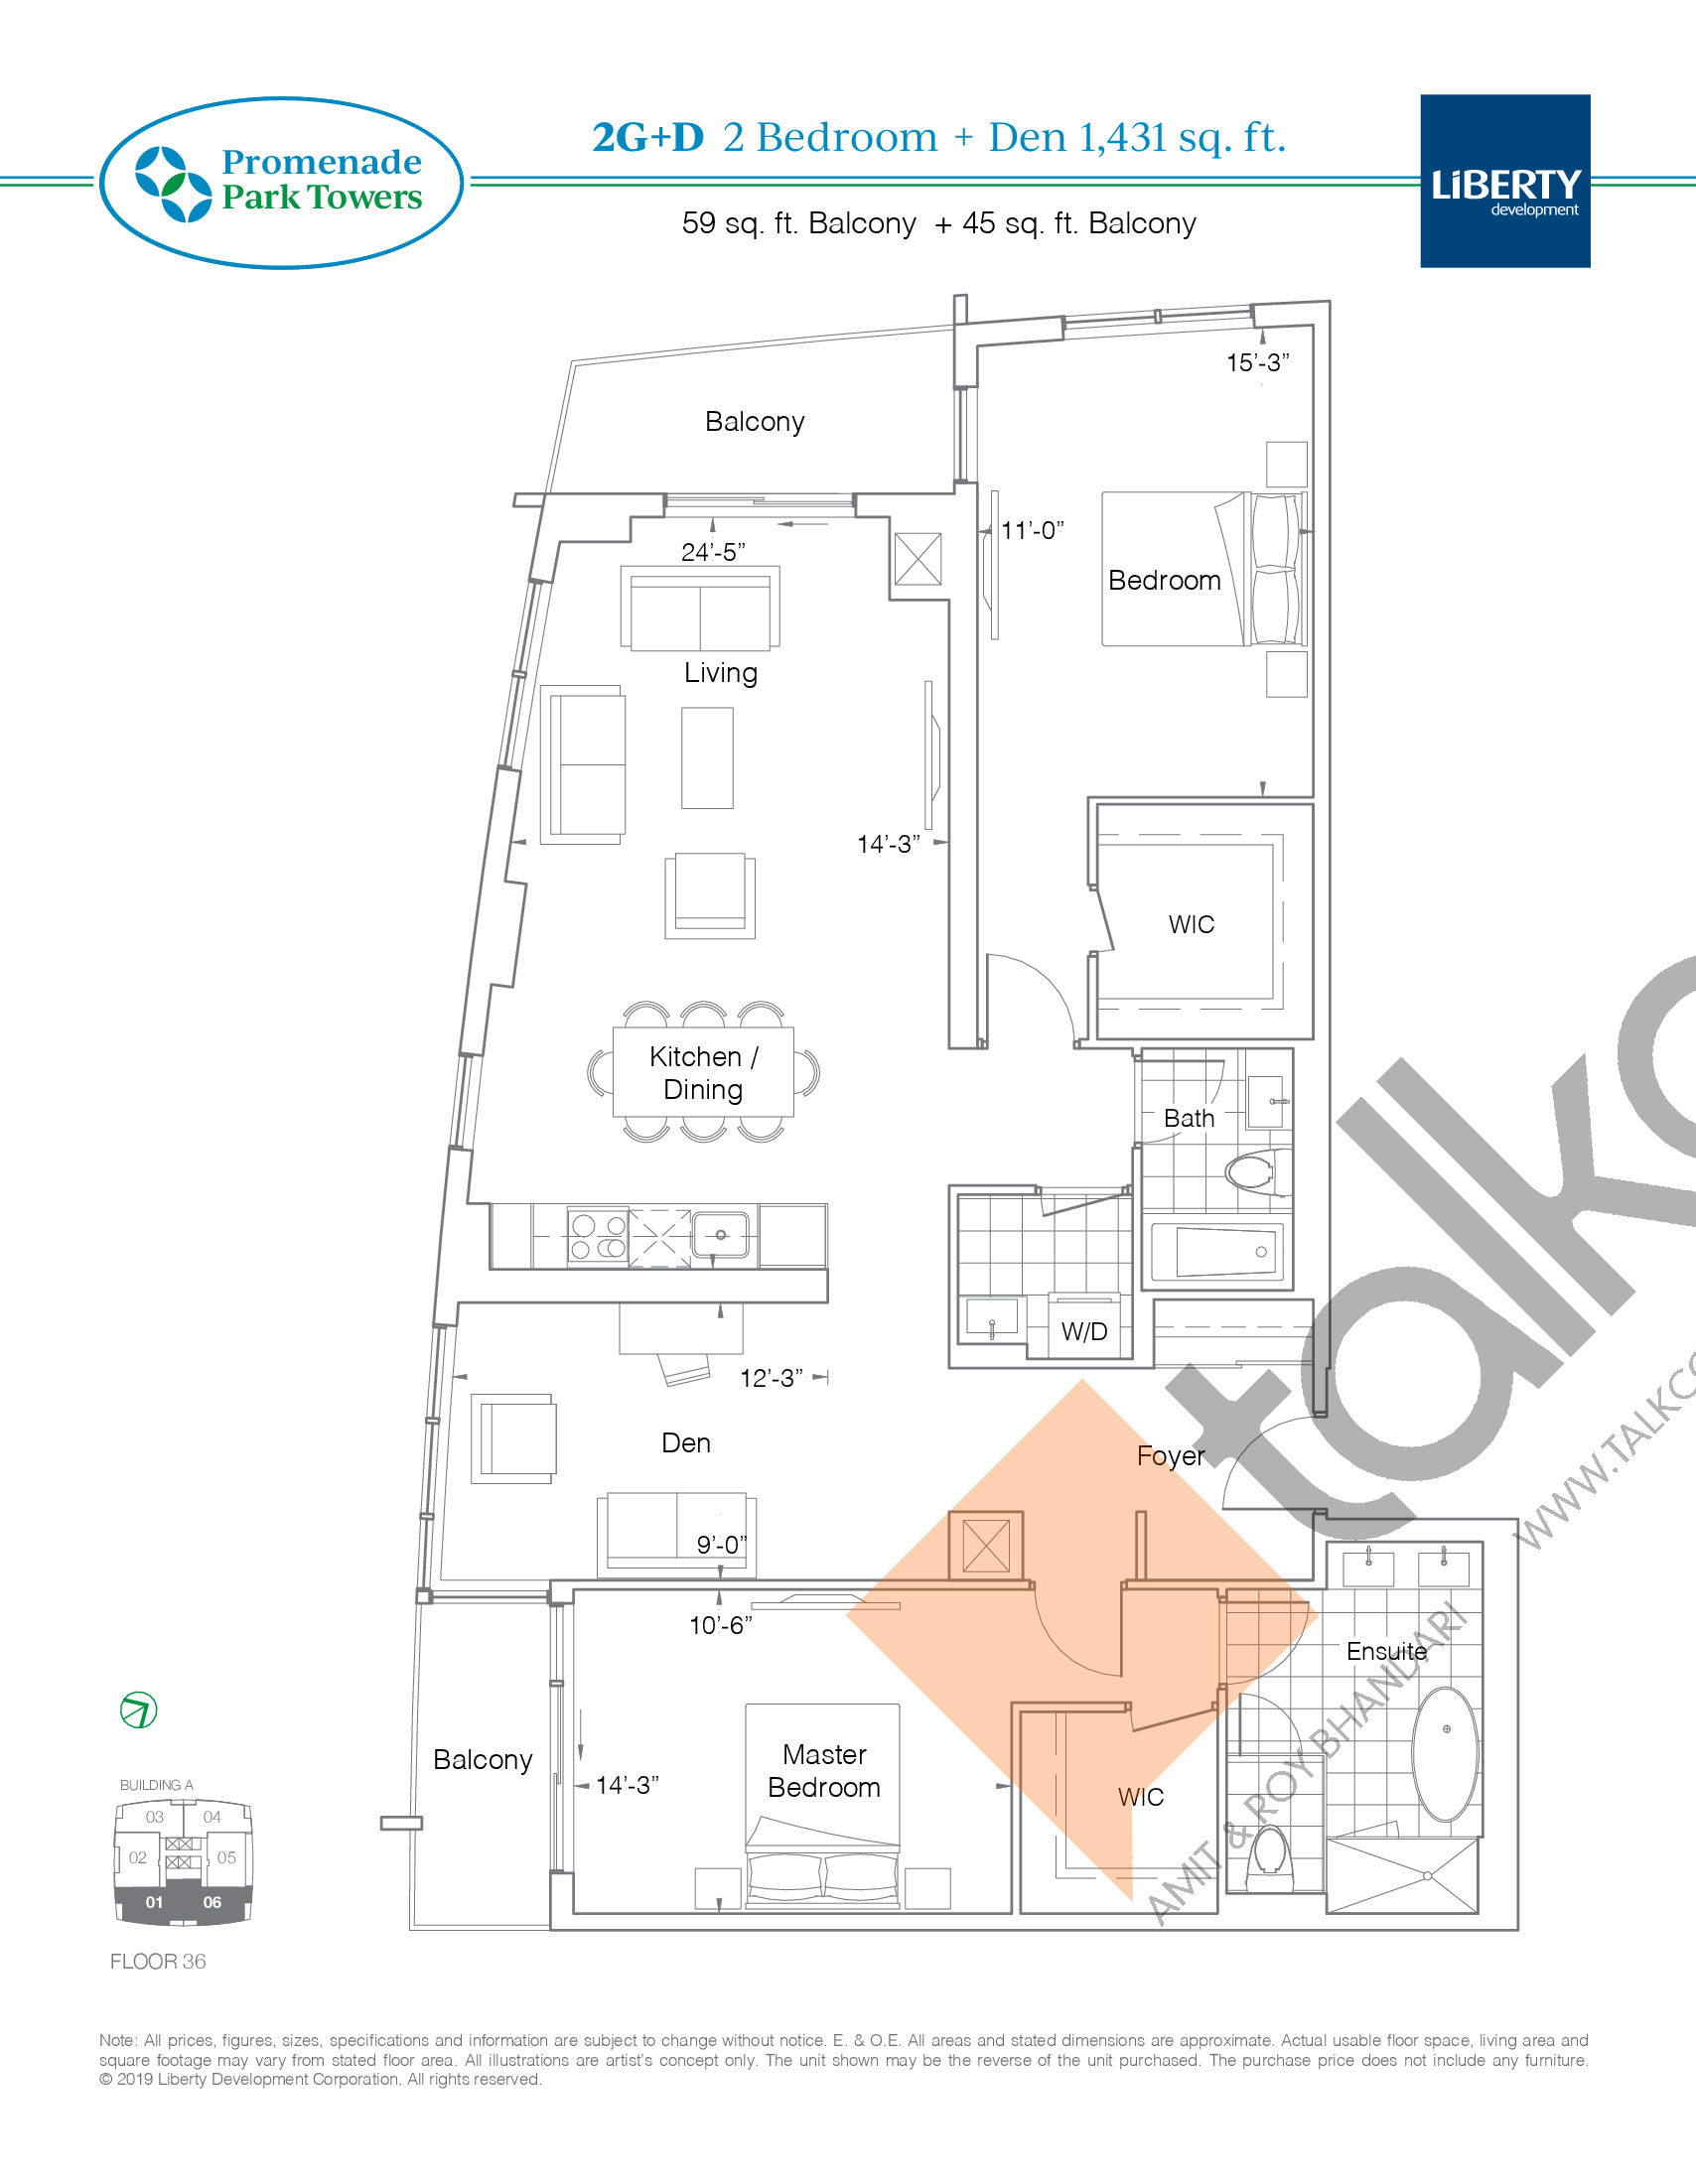 2G+D Floor Plan at Promenade Park Towers Condos - 1431 sq.ft